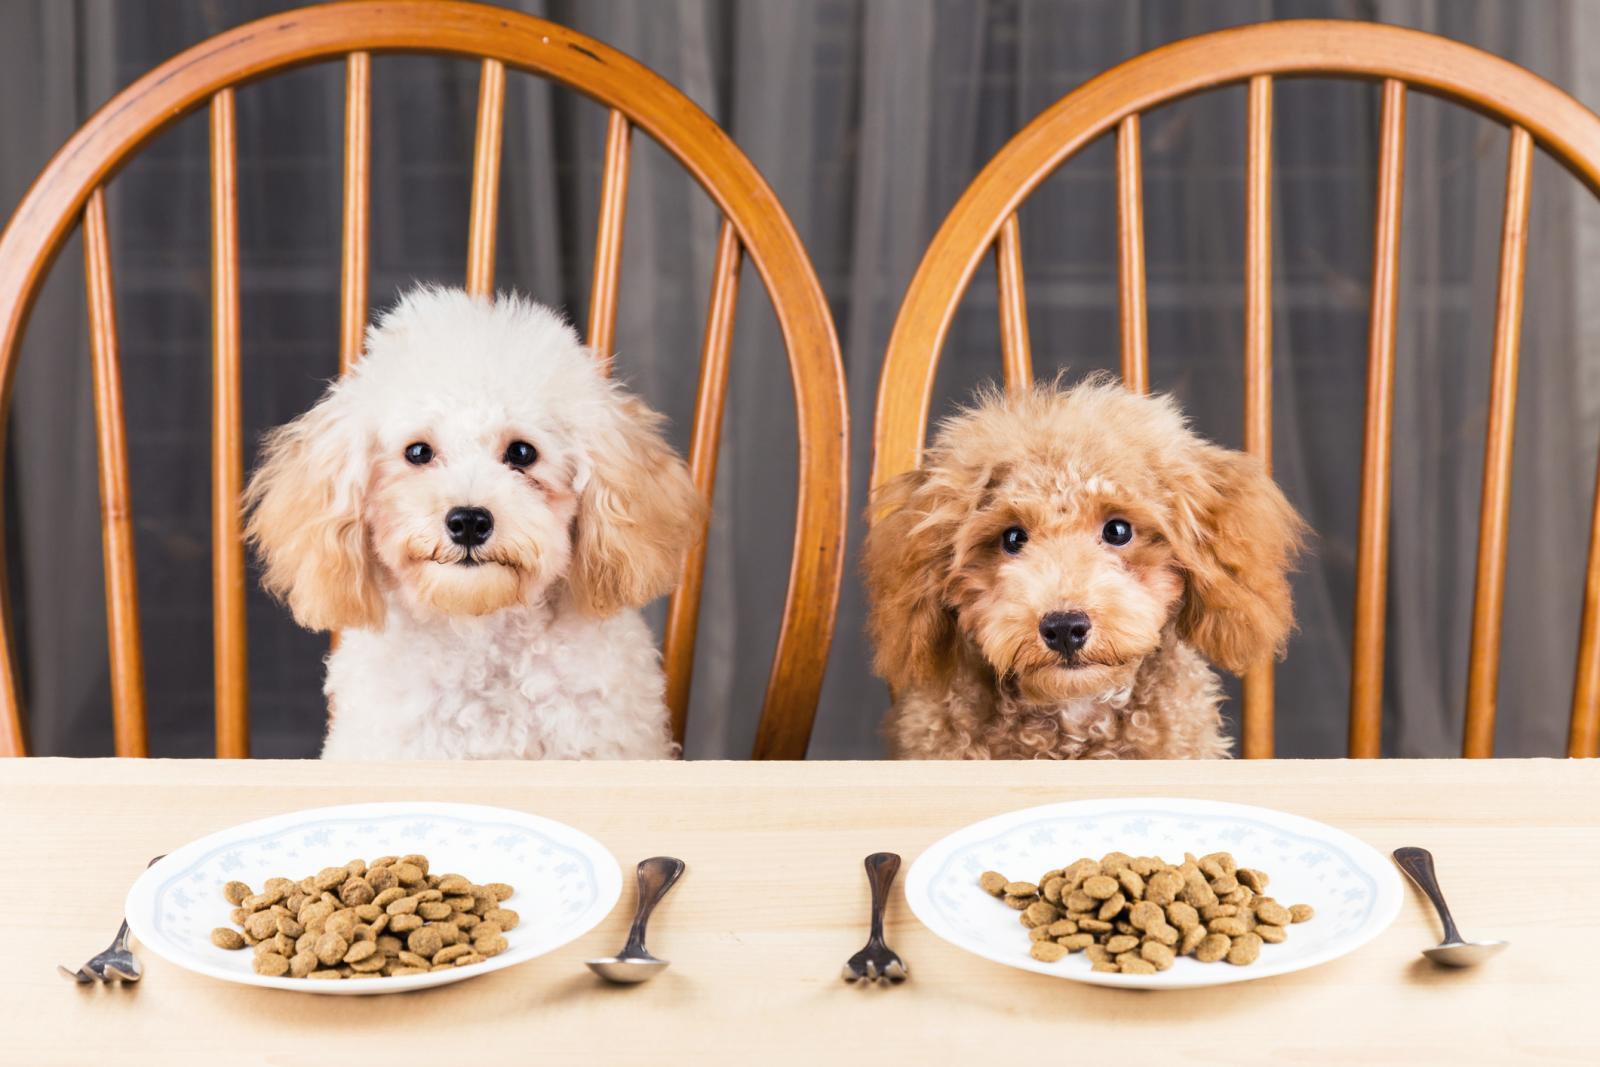 Portrait Of Dogs With Pet Food At Table